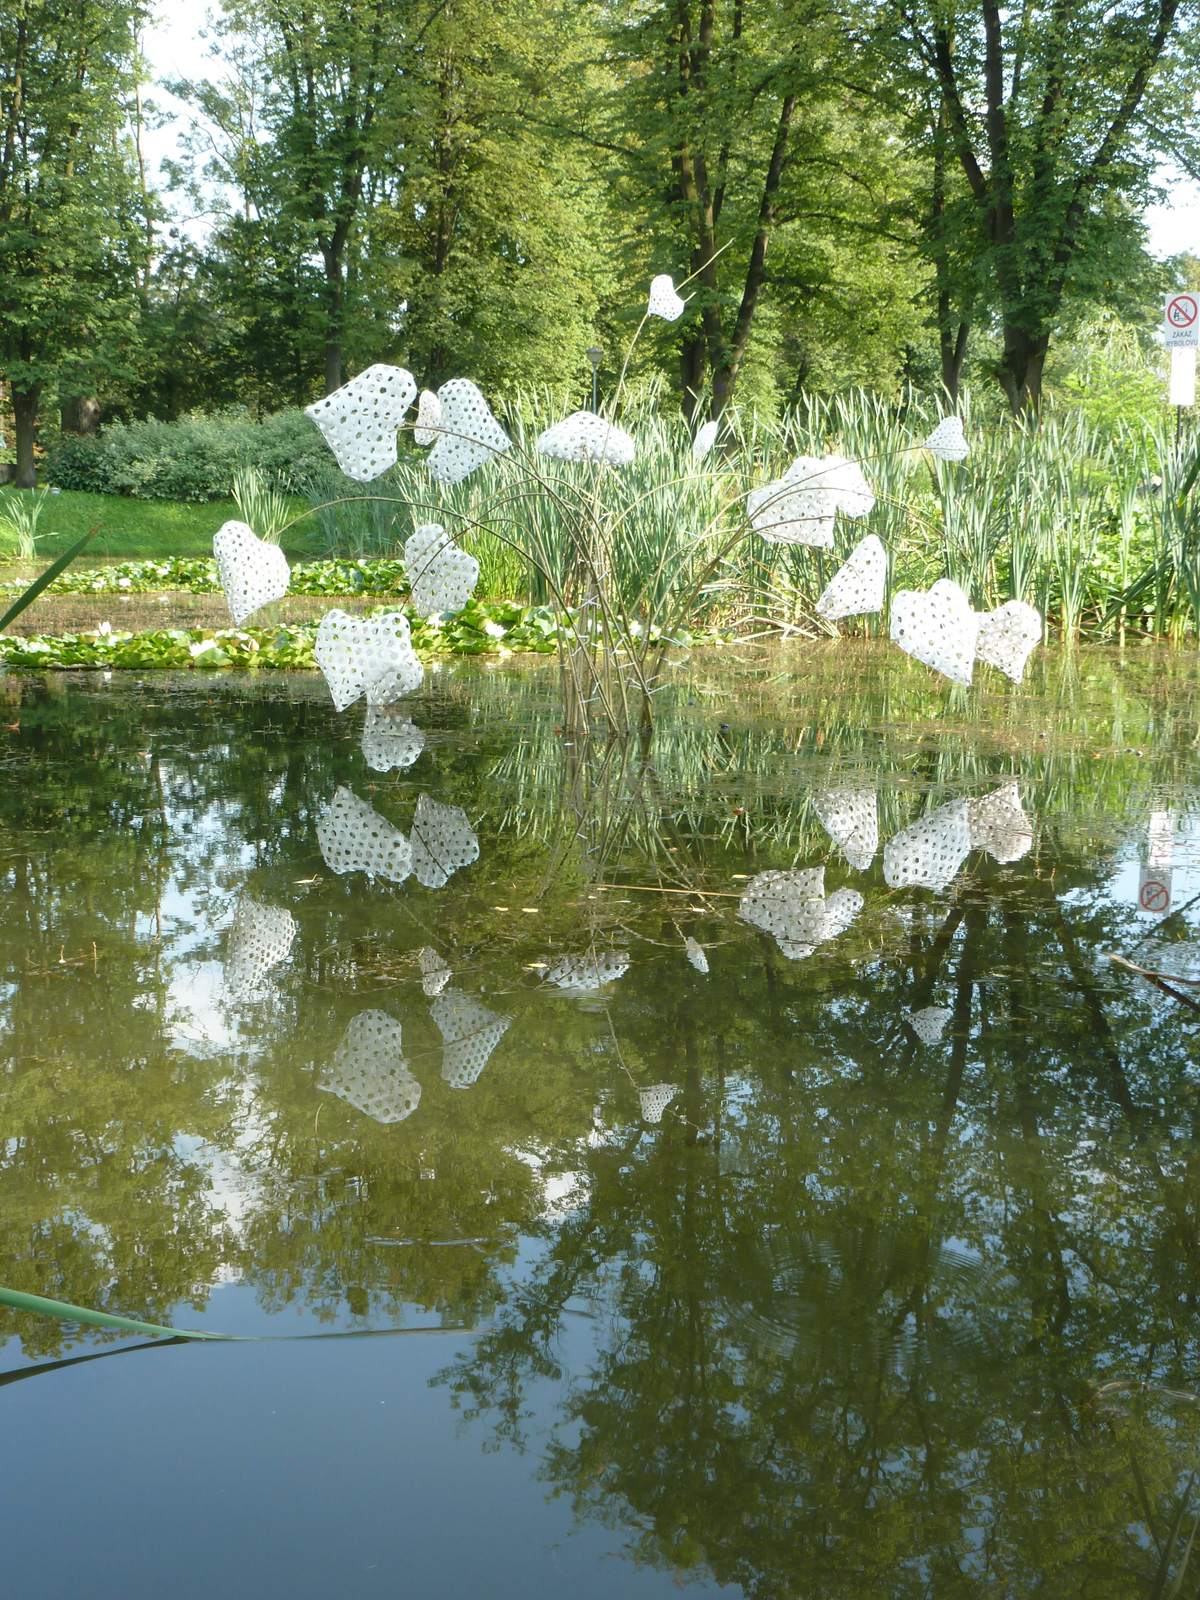 Heart Fountain - Ceski Tesin, Czech Republic, strapping tape and willow 7 x 3m